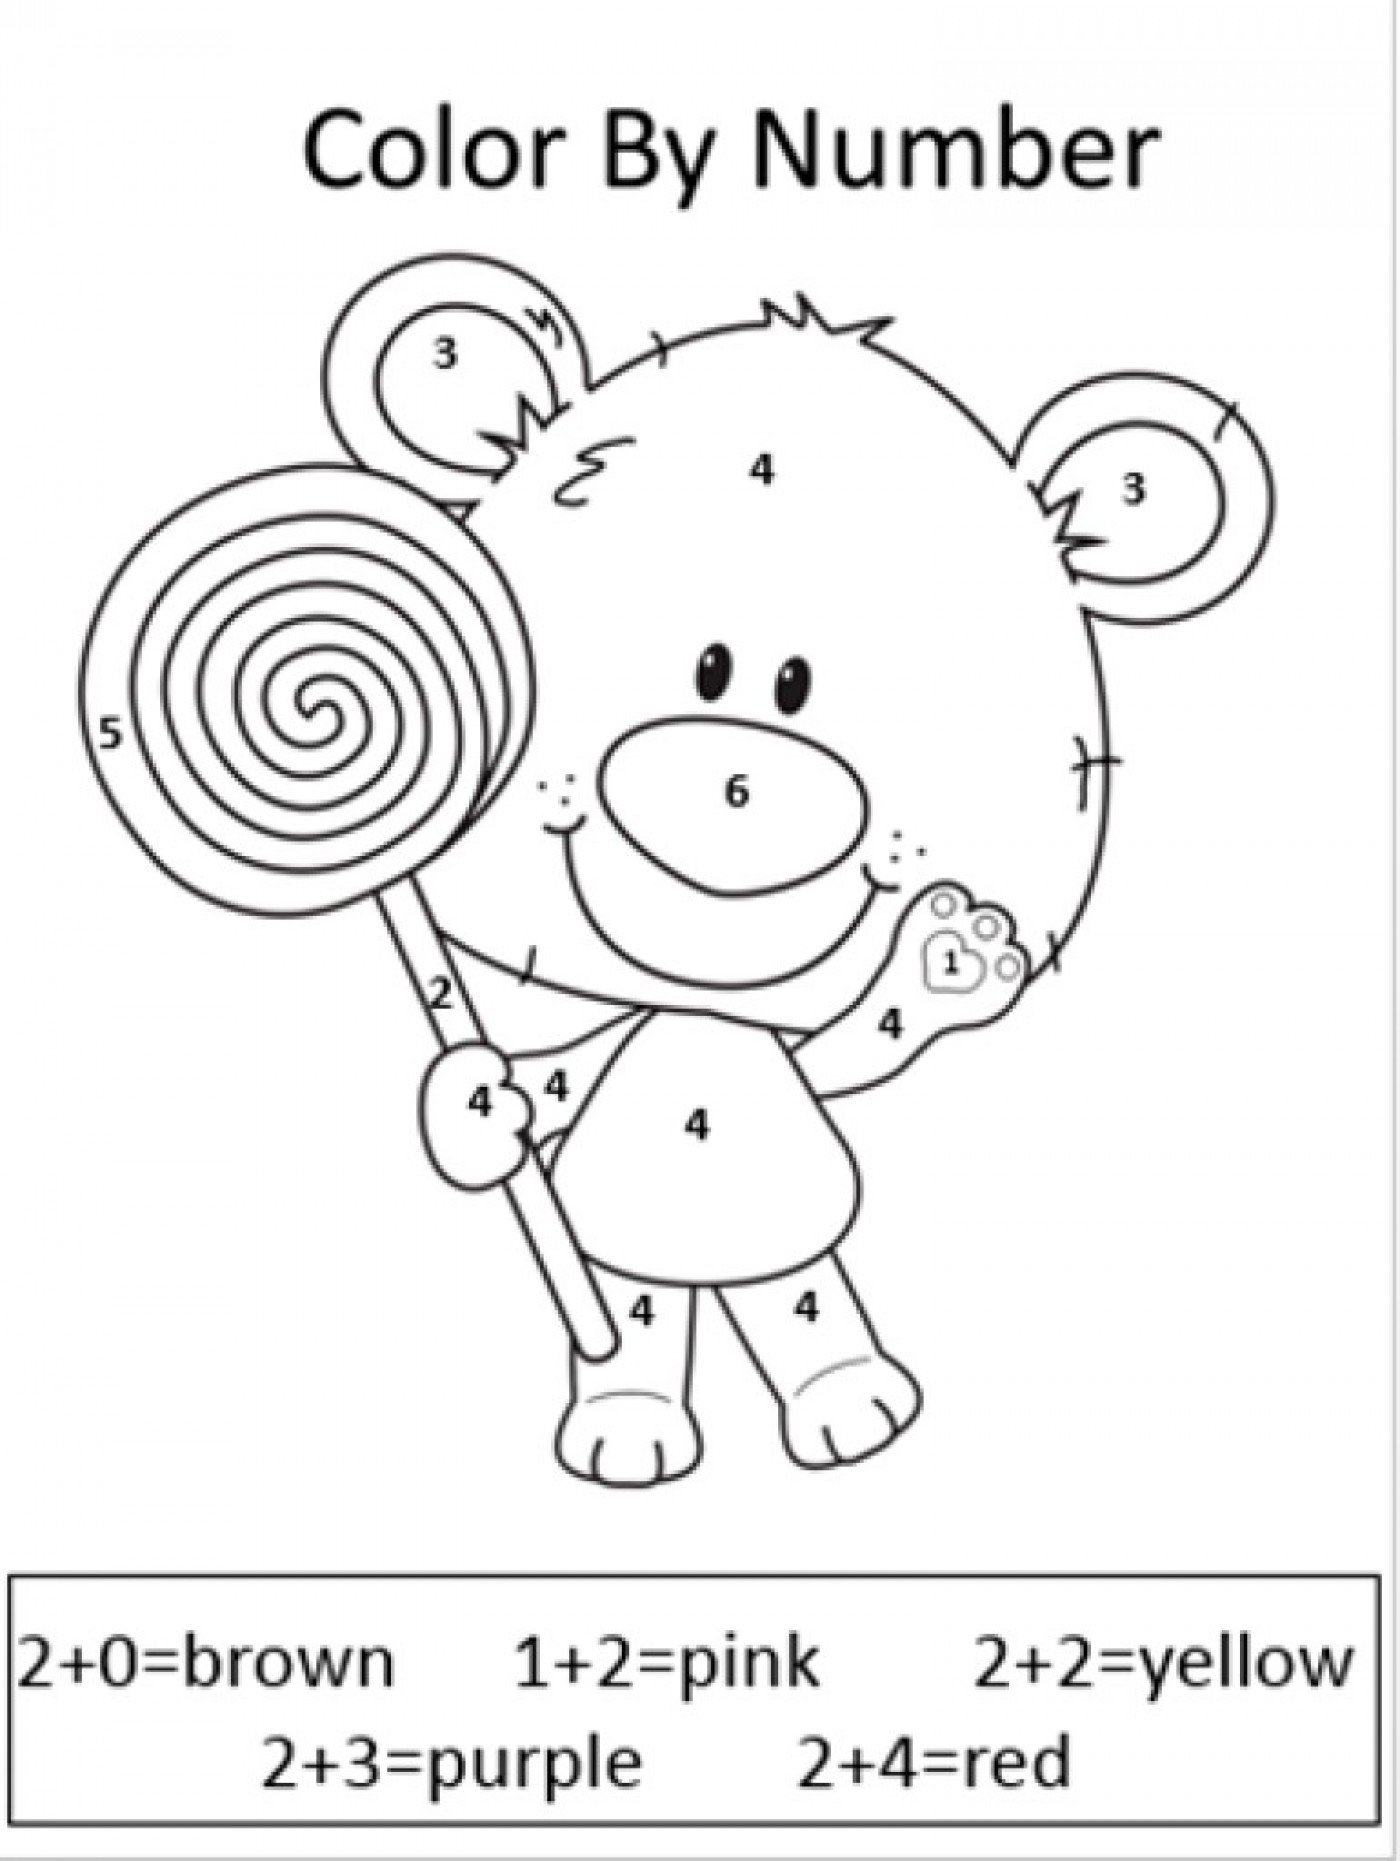 Fruits Of the Spirit Worksheets Worksheets Easter Math 1st Grade for Impressive Coloring